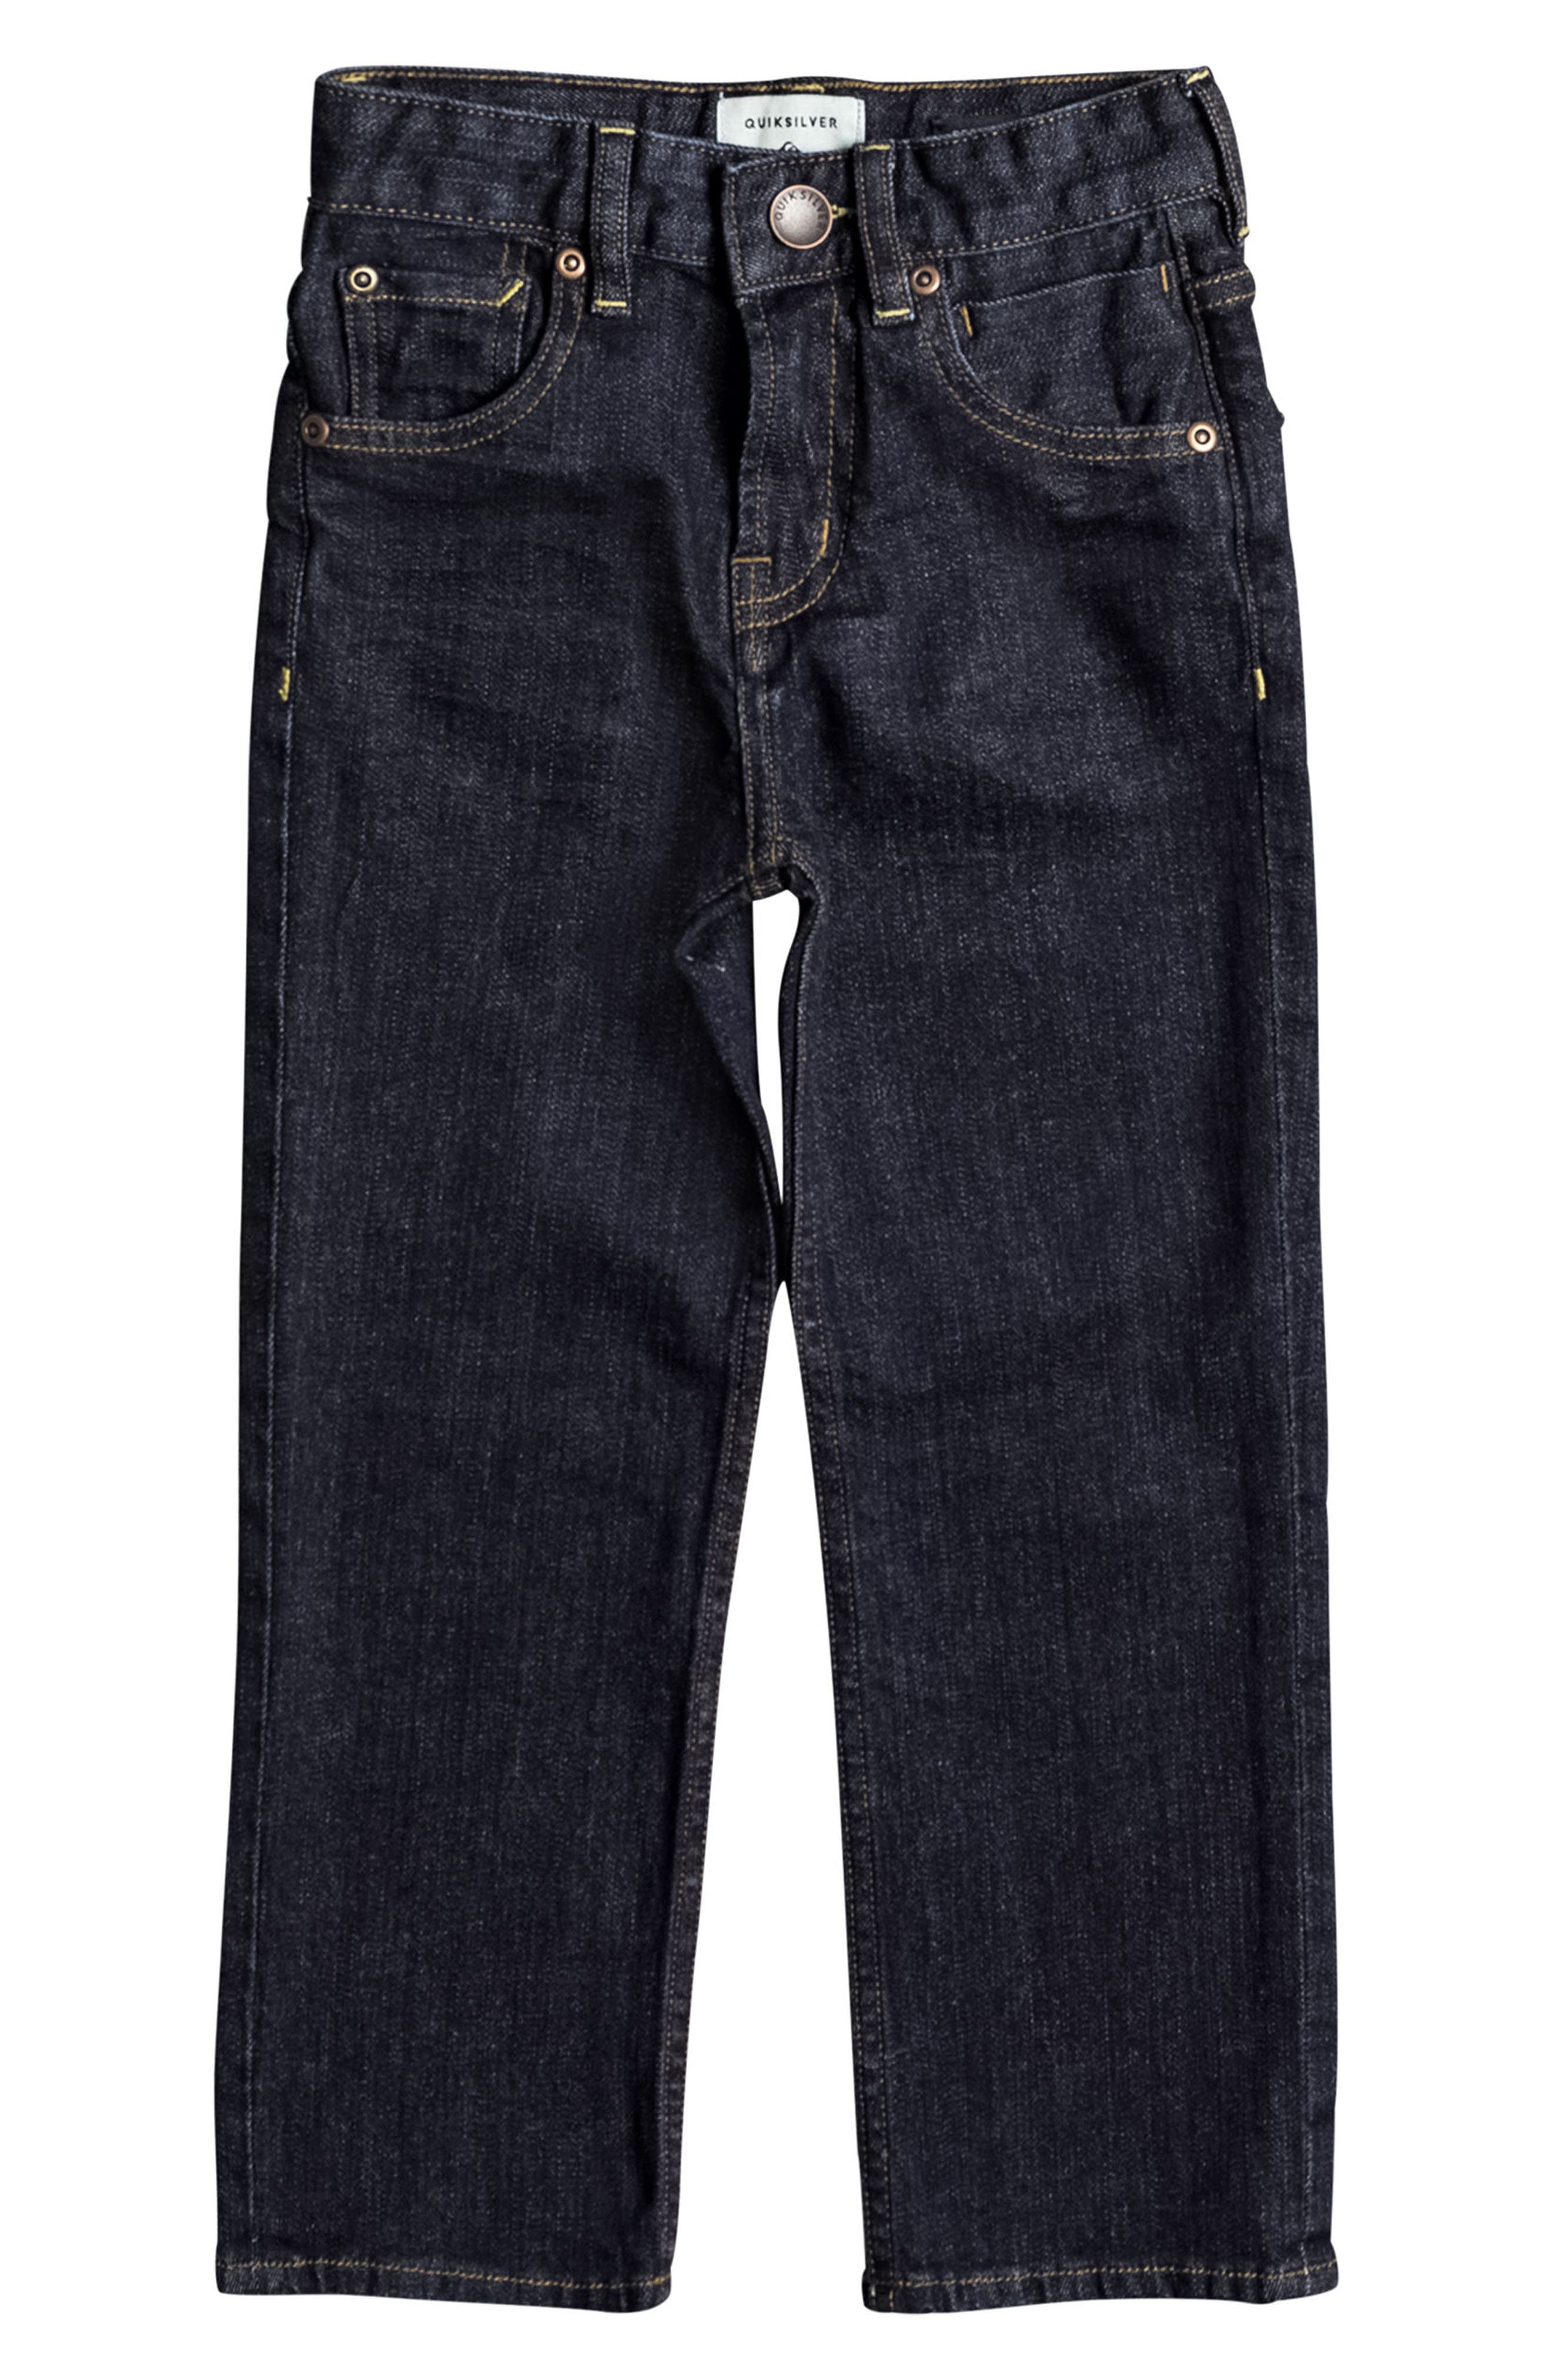 Alternate Image 1 Selected - Quiksilver Sequel Rinse Jeans (Toddler Boys & Little Boys)